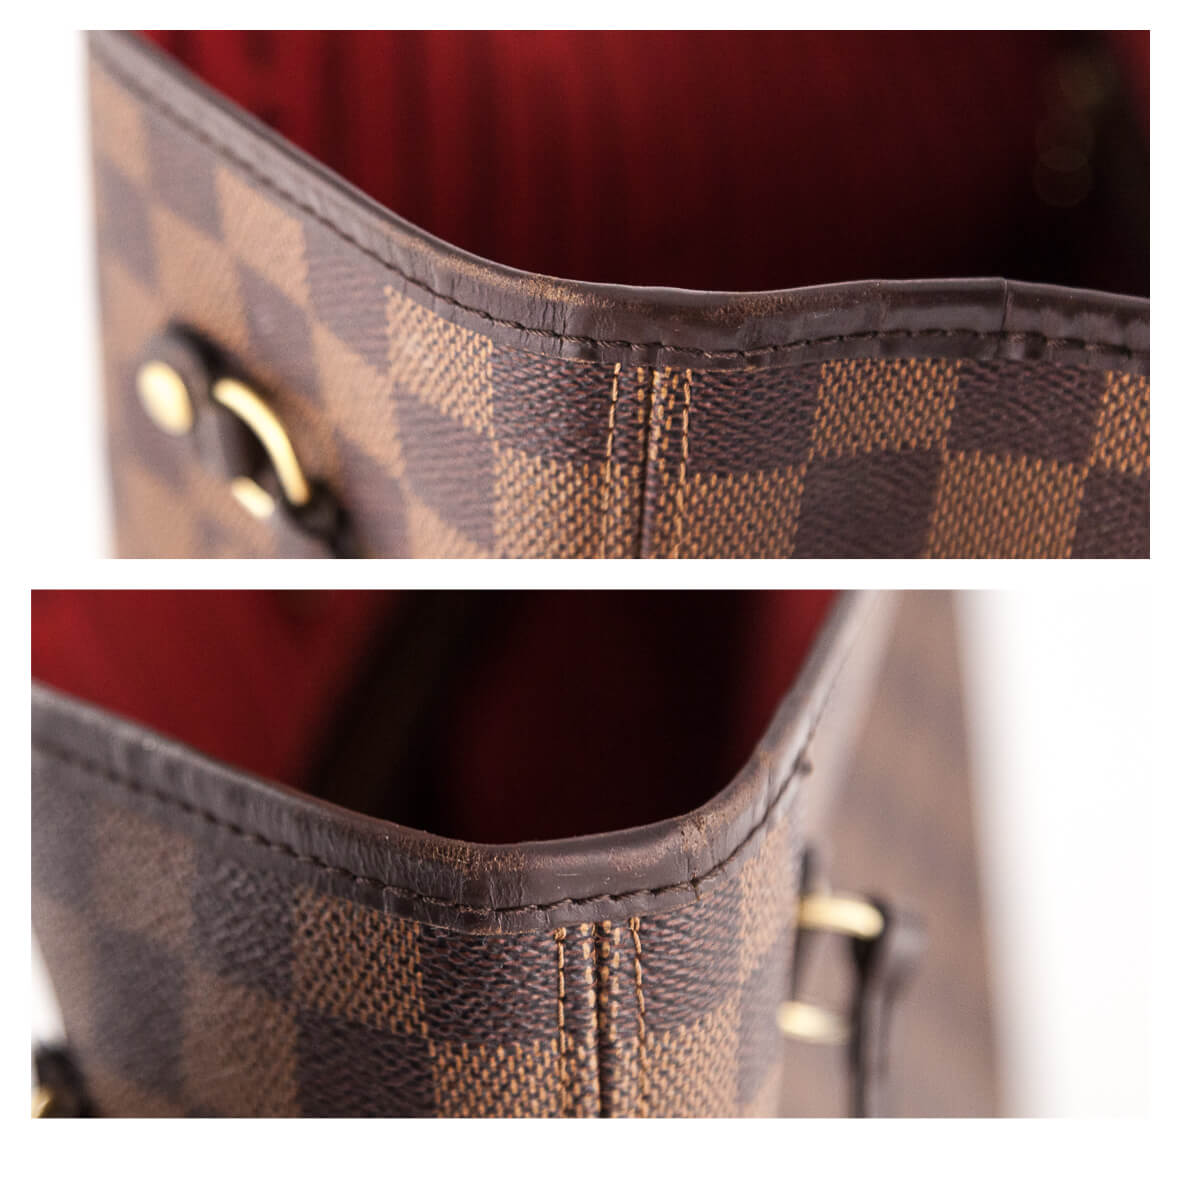 ... Louis Vuitton Damier Ebene Neverfull MM - LOVE that BAG - Preowned  Authentic Designer Handbags ... 3a5a4b1f65480